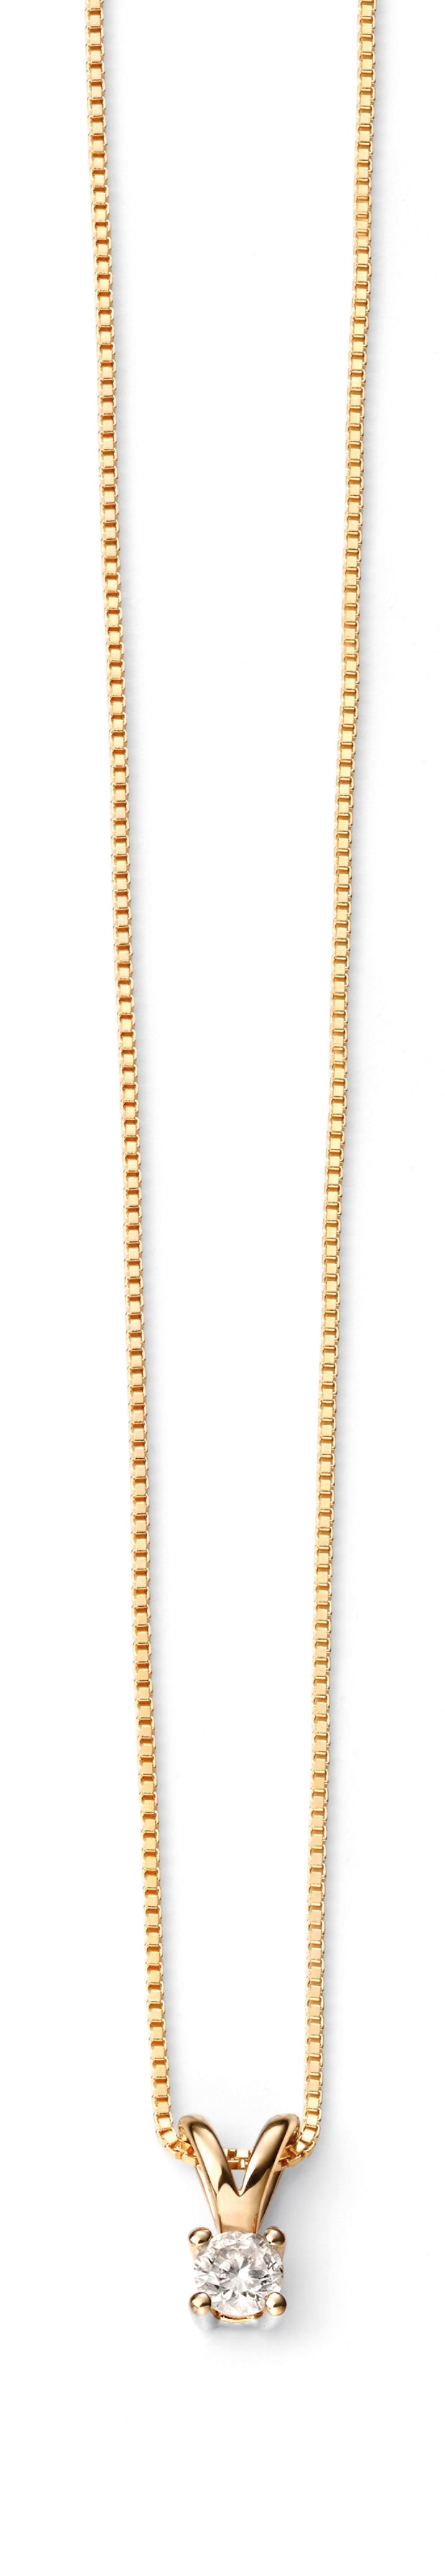 Solitaire pendant & Yellow Gold Chain